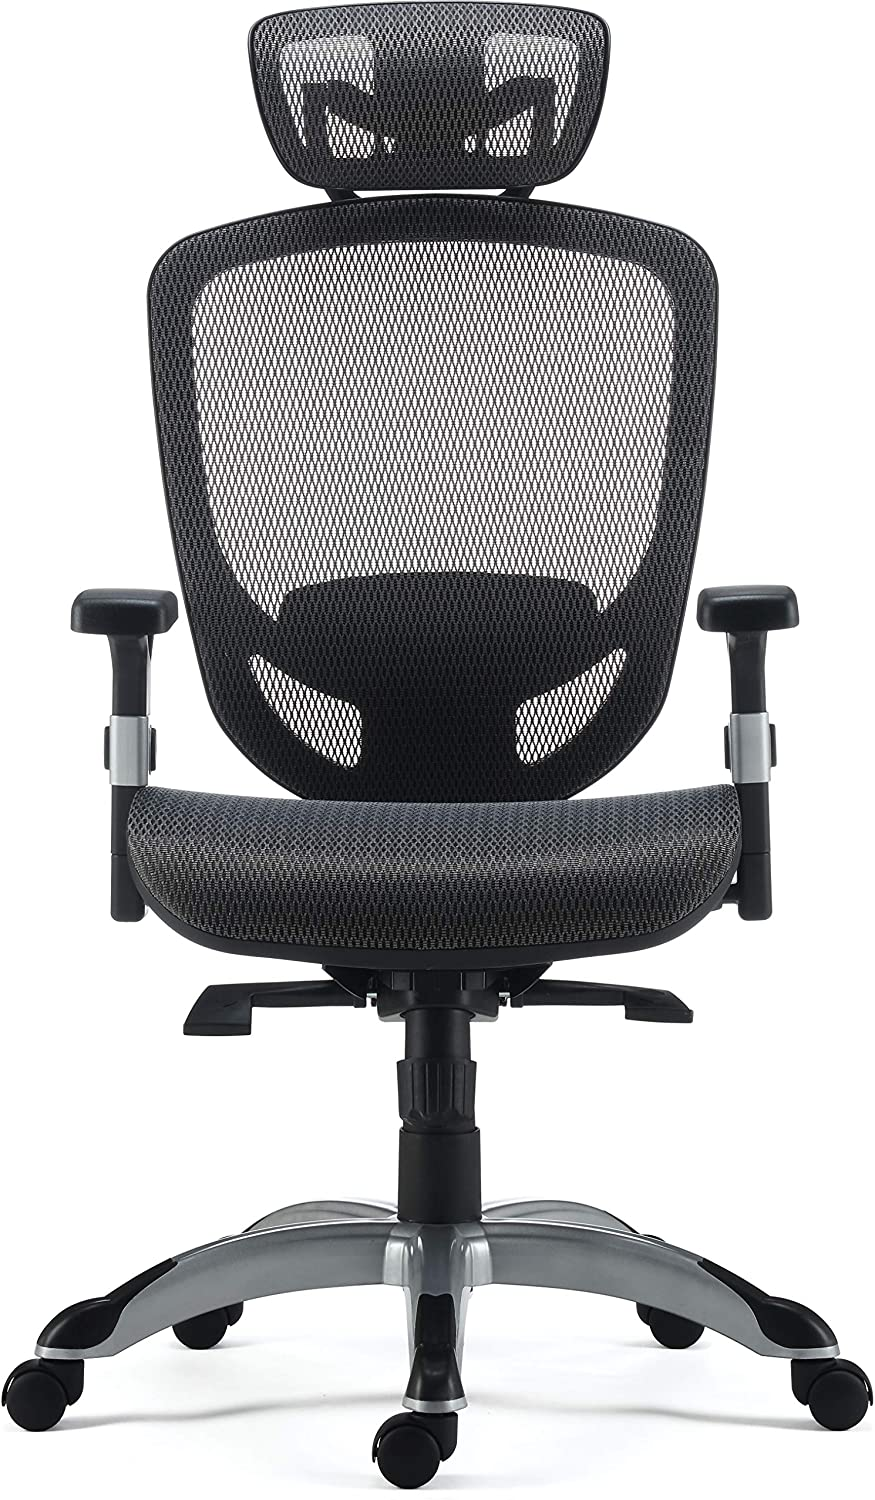 Staples Hyken Mesh Task Chair, Black (23481-CC)- Free Returns